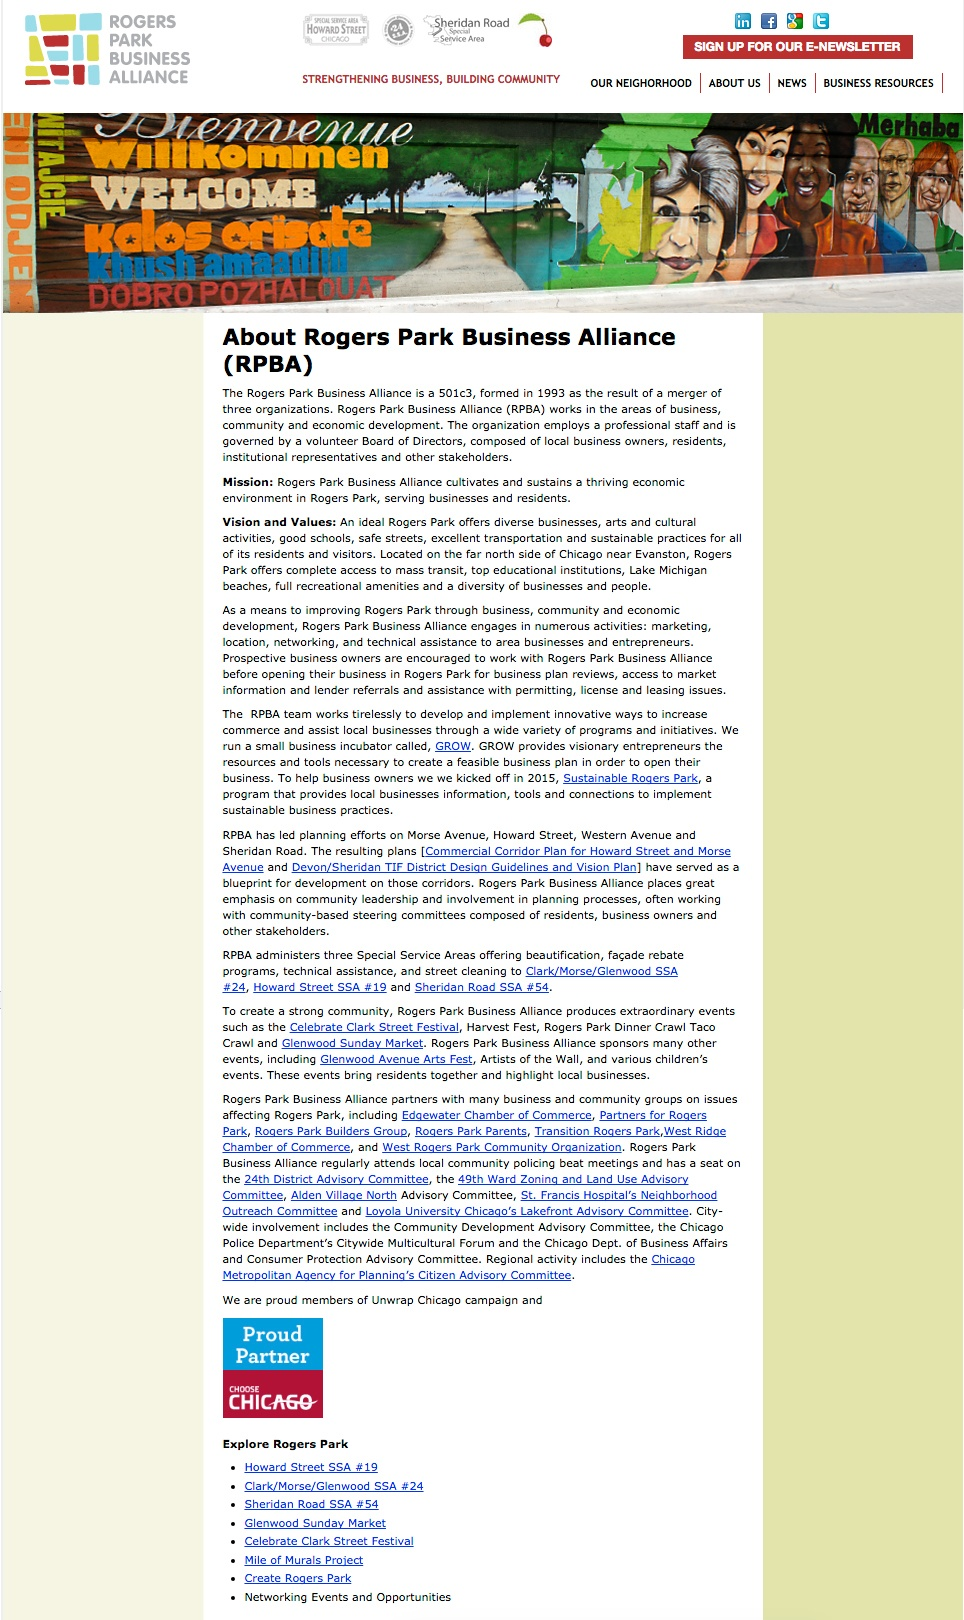 Previous RPBA About Us Page